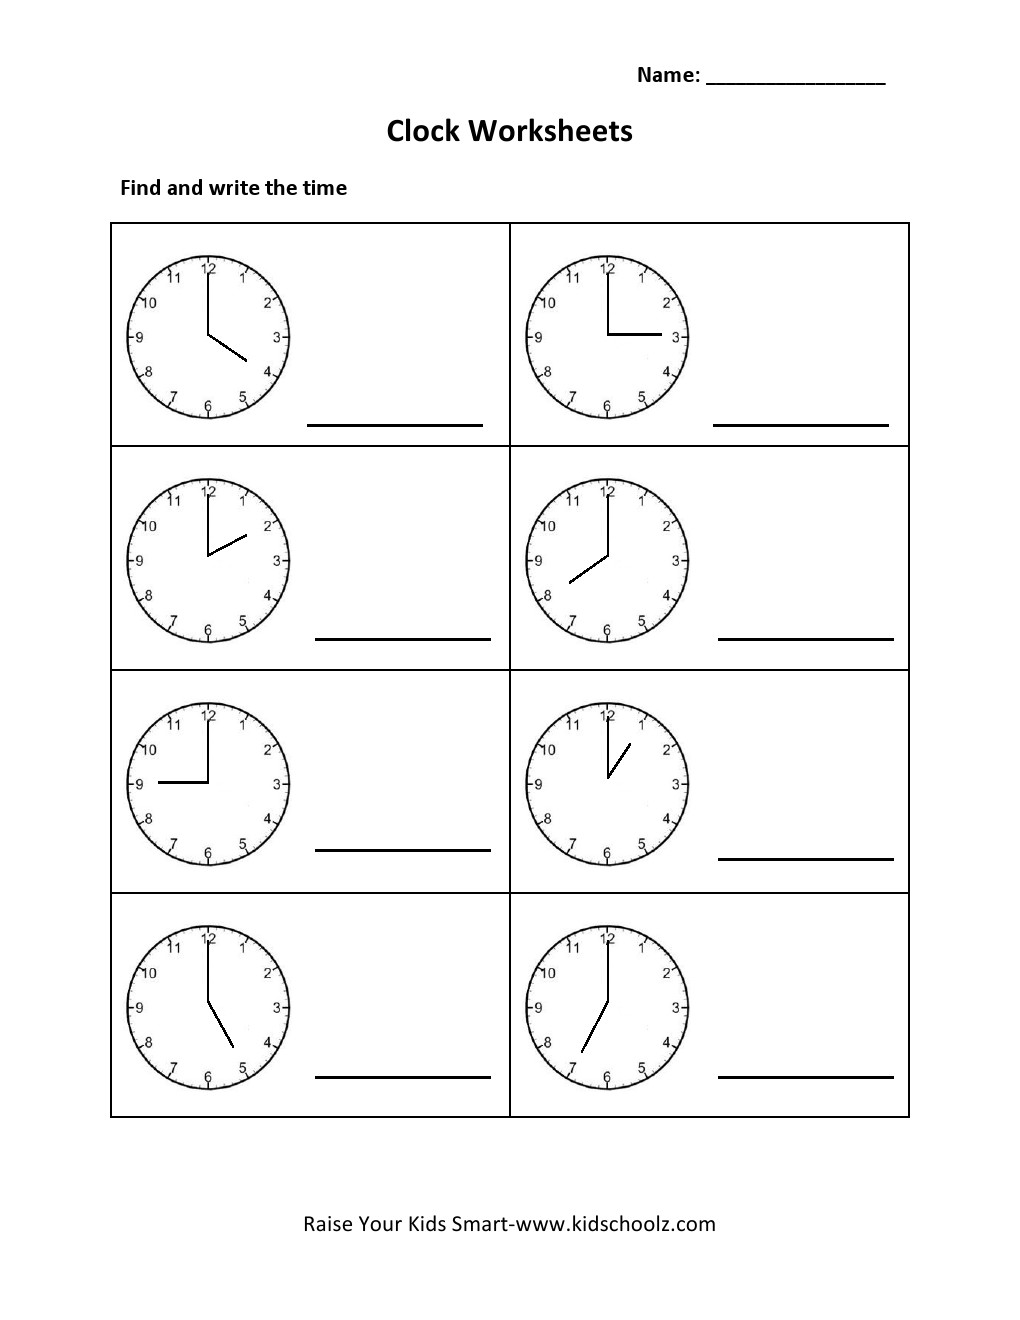 Worksheets Clock Worksheets Grade 2 grade 2 clock worksheet kidschoolz worksheets